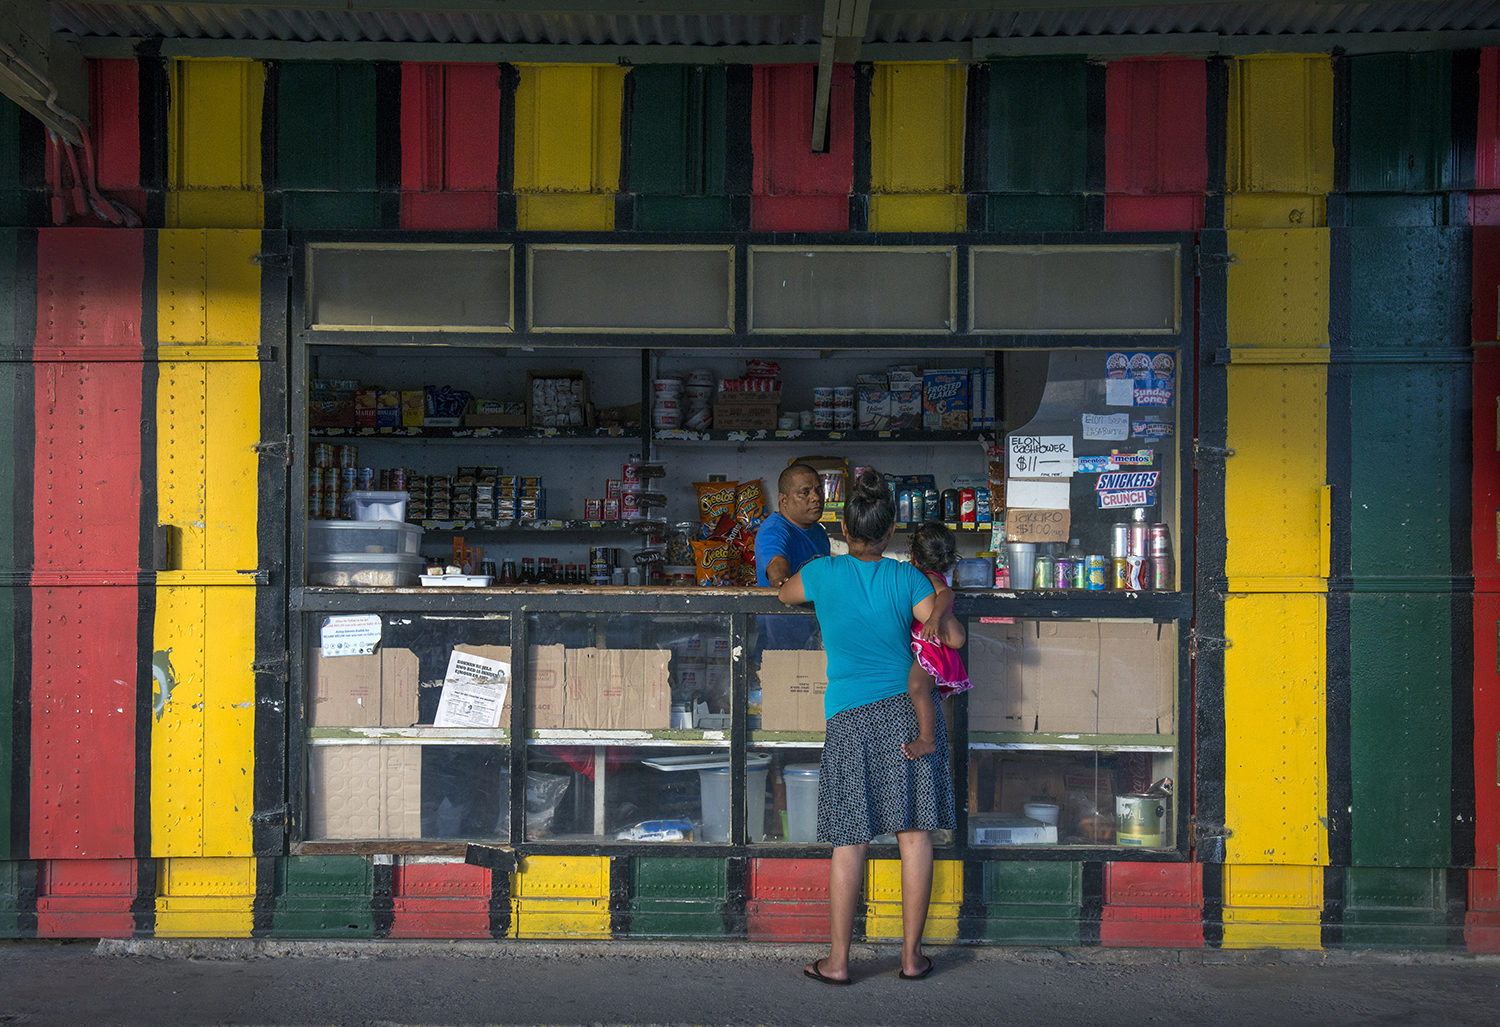 <p>This store in Chuuk is typical of the small shops that cater to casual customers. Photo by Mark Edward Harris.</p>